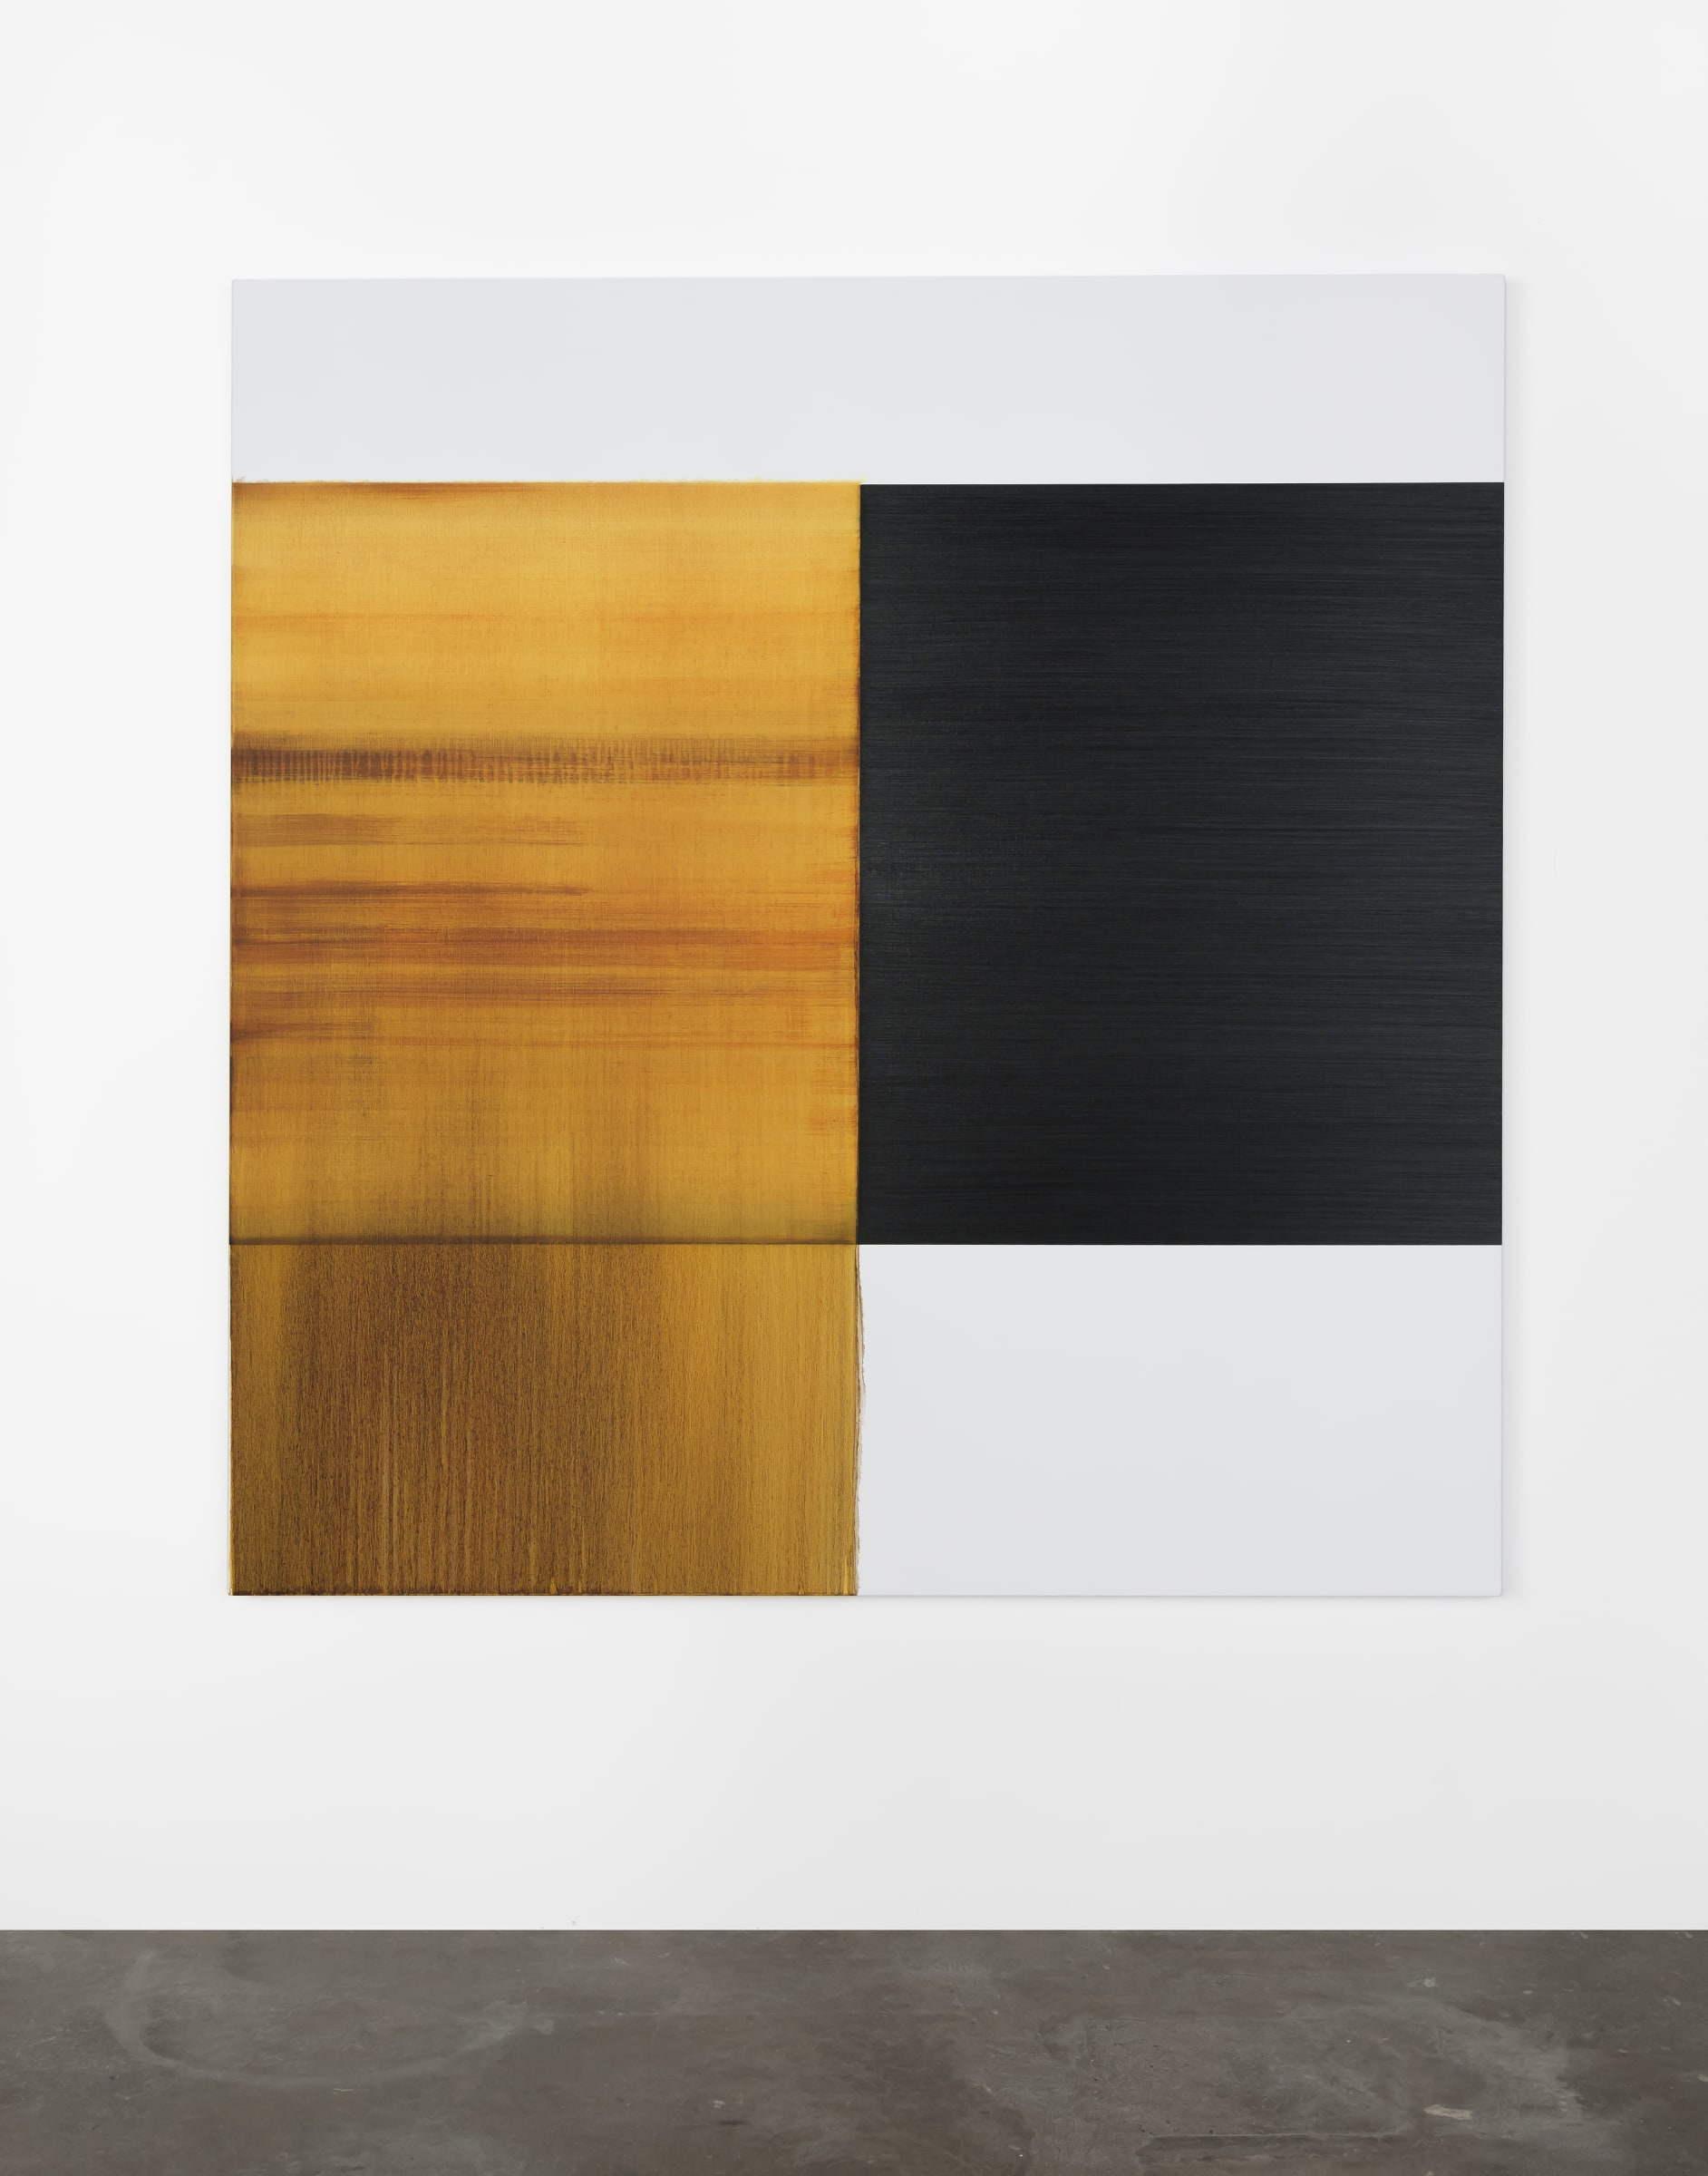 """<span class=""""link fancybox-details-link""""><a href=""""/artists/33-callum-innes/works/17628/"""">View Detail Page</a></span><div class=""""artist""""><strong>CALLUM INNES</strong></div> <div class=""""title""""><em>Exposed Painting Quinacridone Gold</em>, 2020</div> <div class=""""signed_and_dated"""">signed on back</div> <div class=""""medium"""">oil on linen</div> <div class=""""dimensions"""">175 x 172 cm<br /> 68 7/8 x 67 3/4 in</div><div class=""""copyright_line"""">Copyright The Artist</div>"""